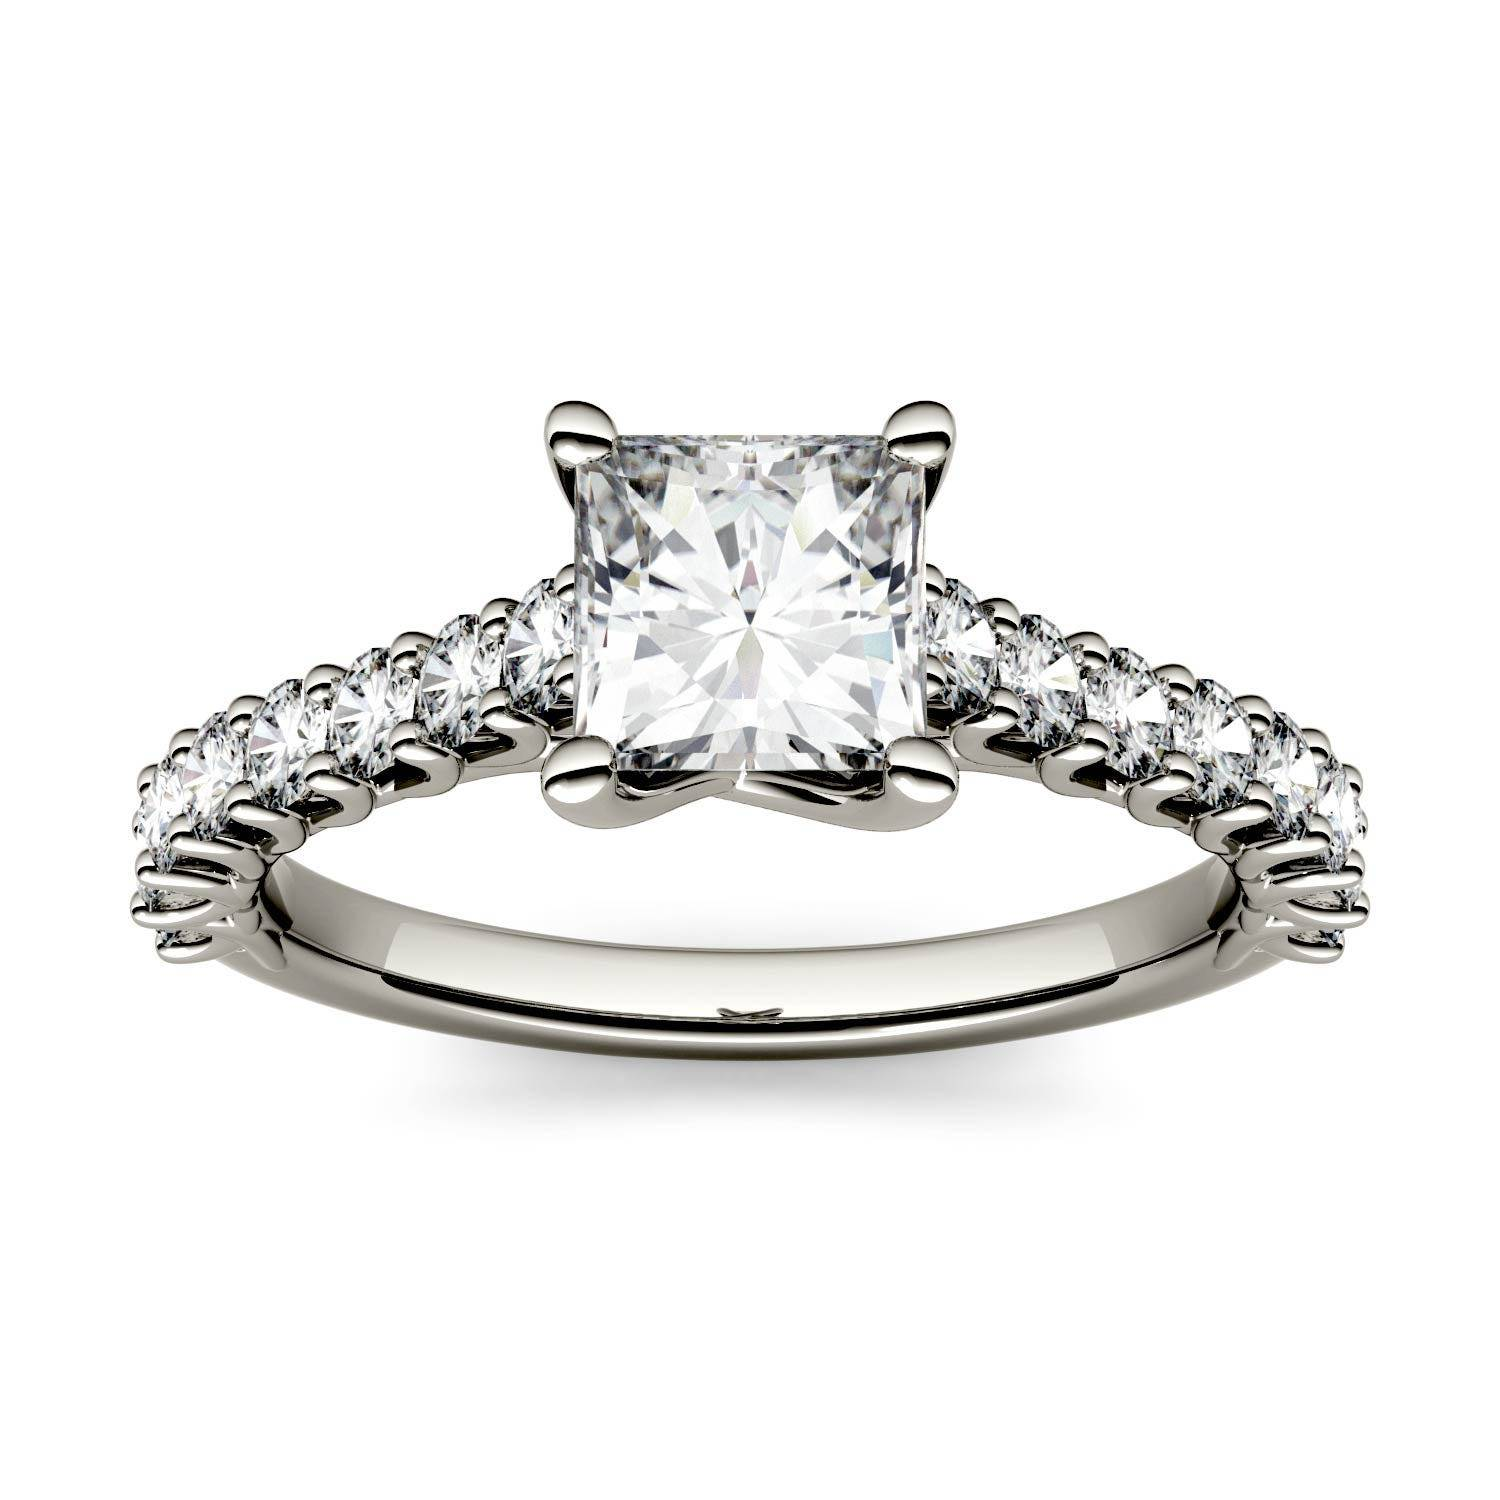 Charles & Colvard Solitaire with Side Accents Engagement Ring in 14K White Gold, Size: 9, 1.48CTW Square Forever One - Colorless Moissanite Charles & Colvard  - White Gold - Size: 9